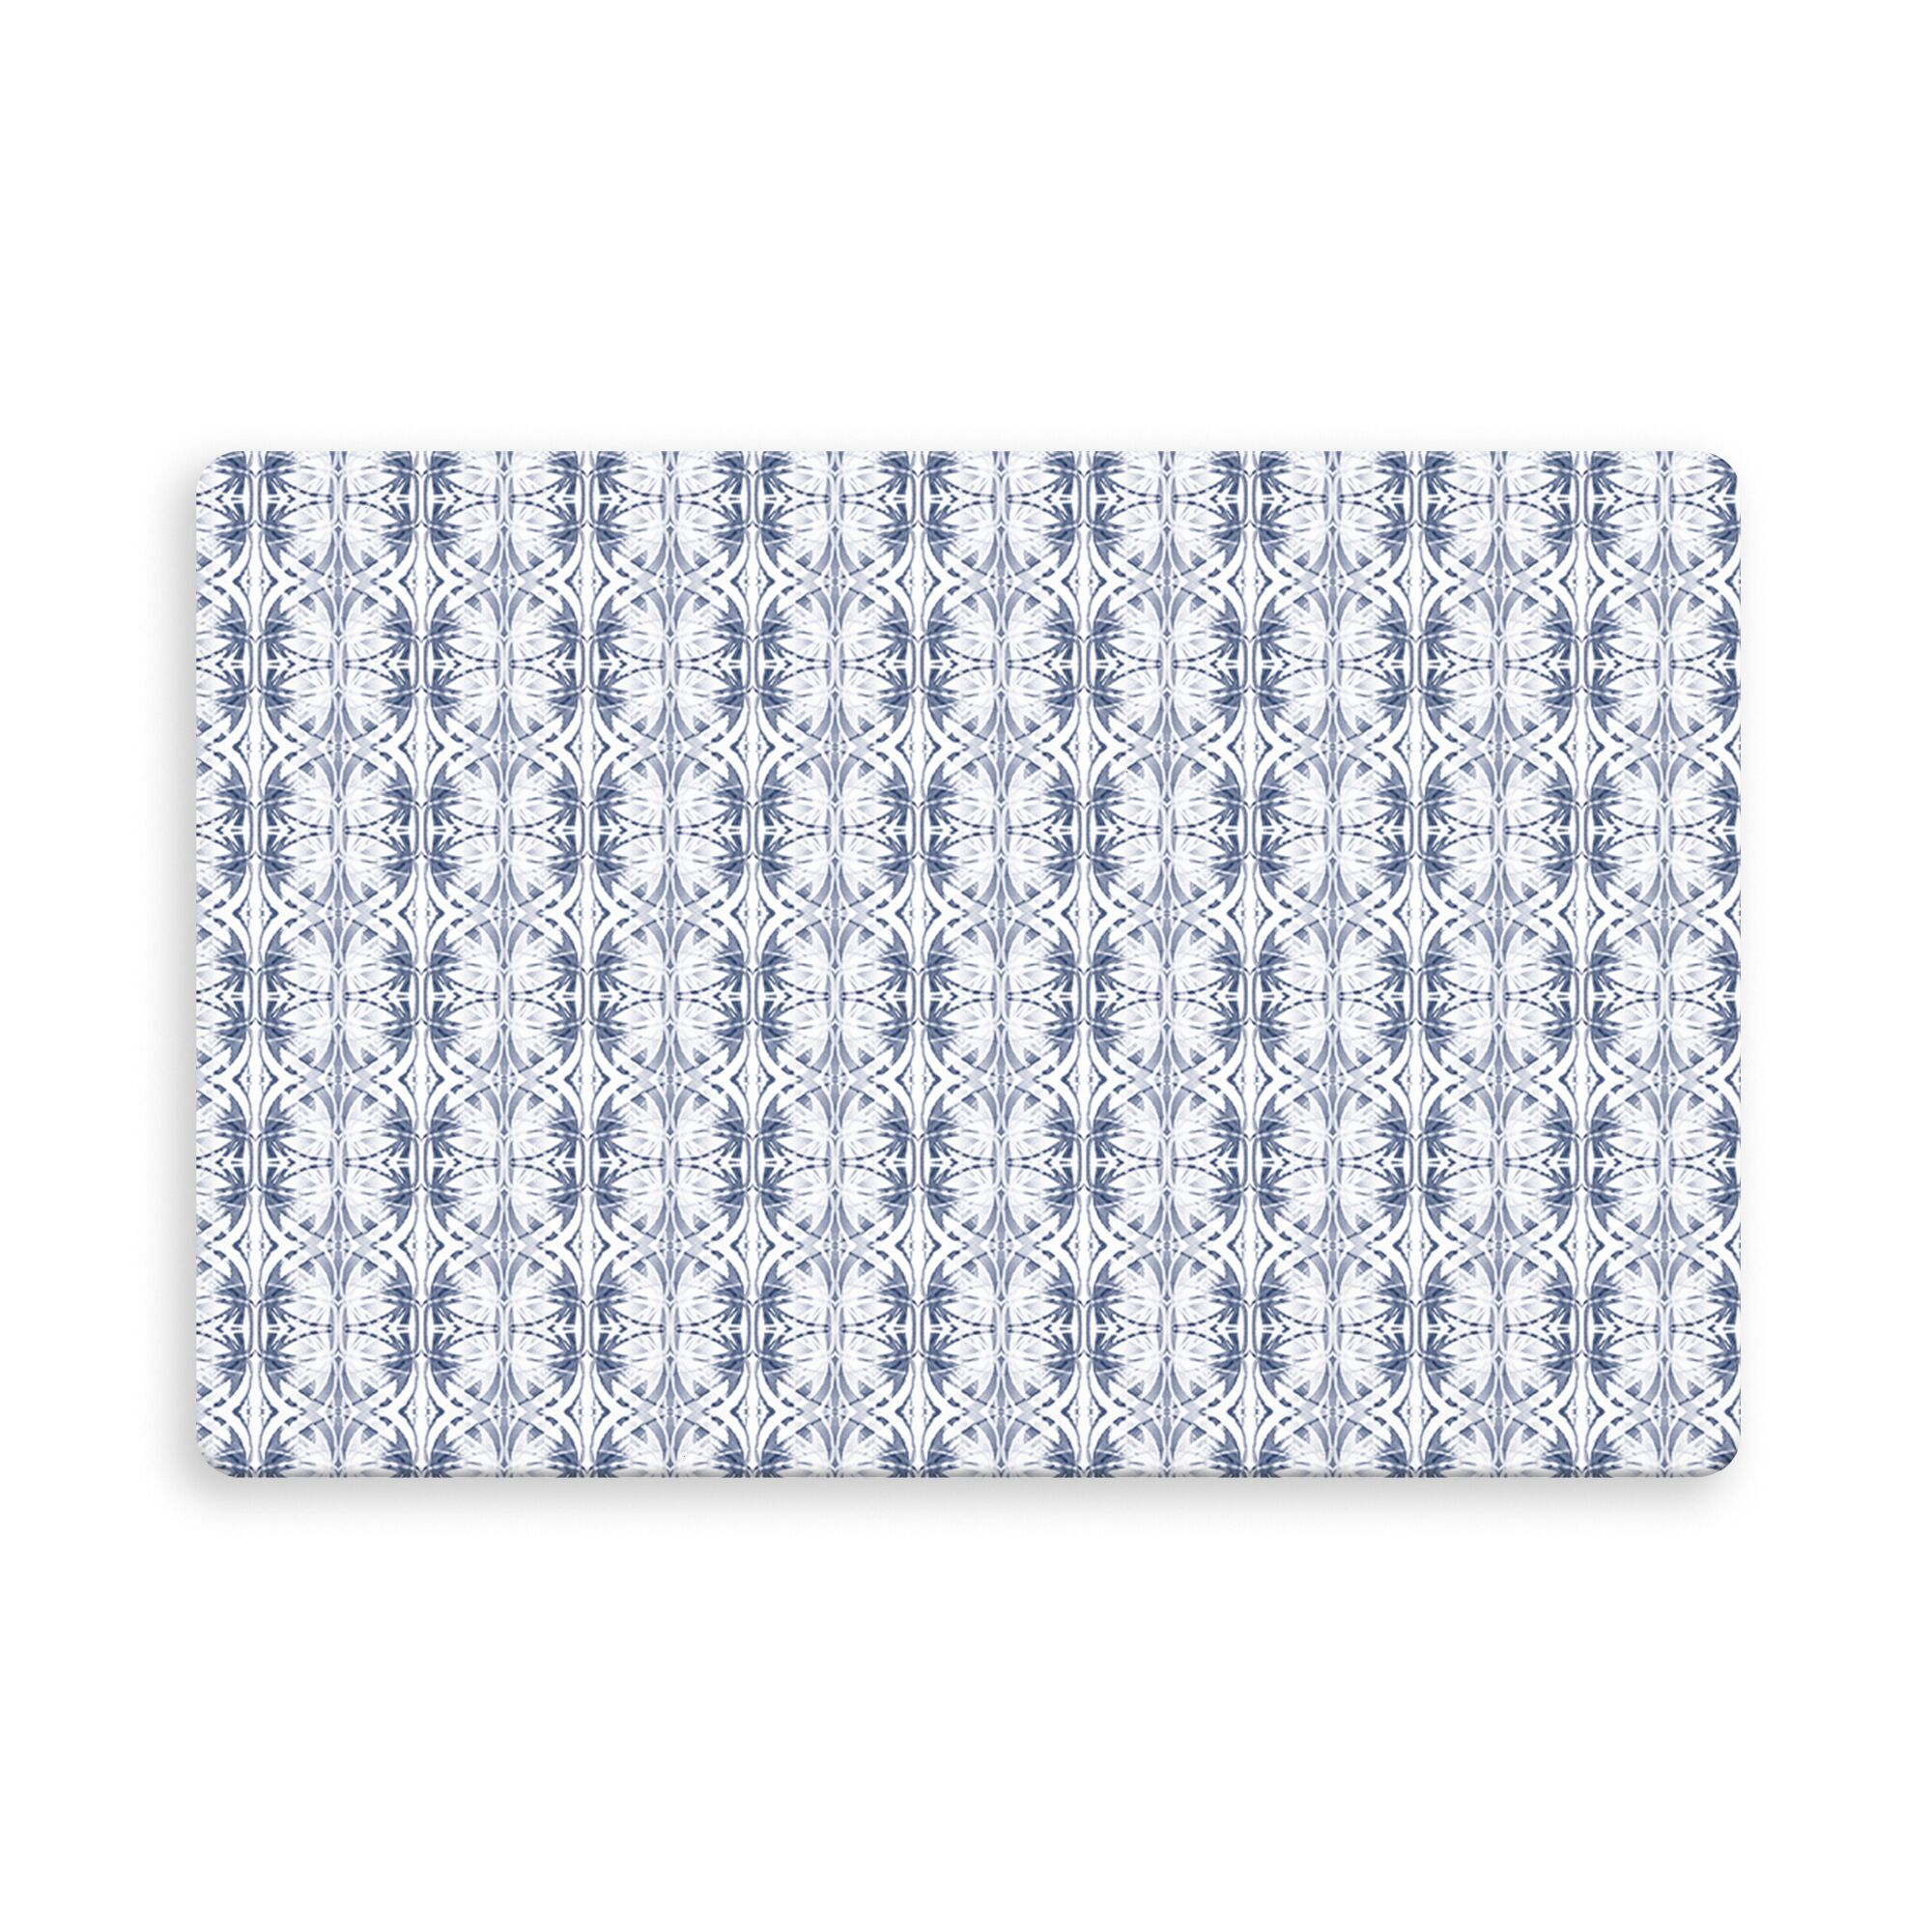 Kiera Kitchen Mat Mat Size: Rectangle 2'7